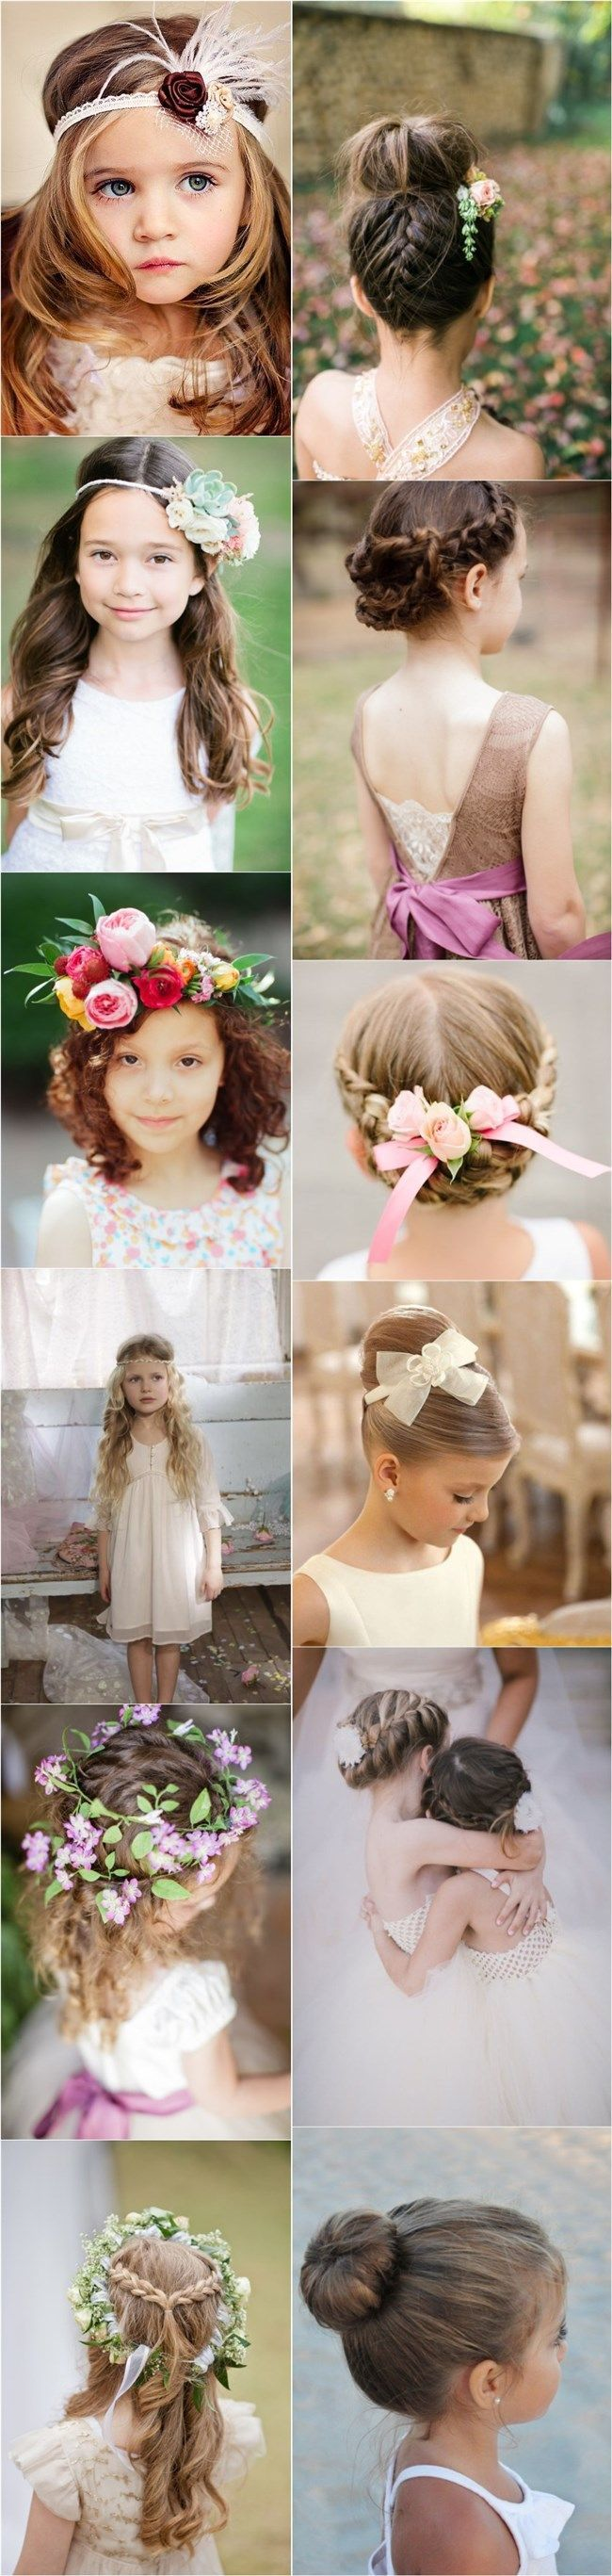 Best 25 little girl updo ideas on pinterest flower girl cute little girl hairstyles updos braids waterfall pmusecretfo Gallery